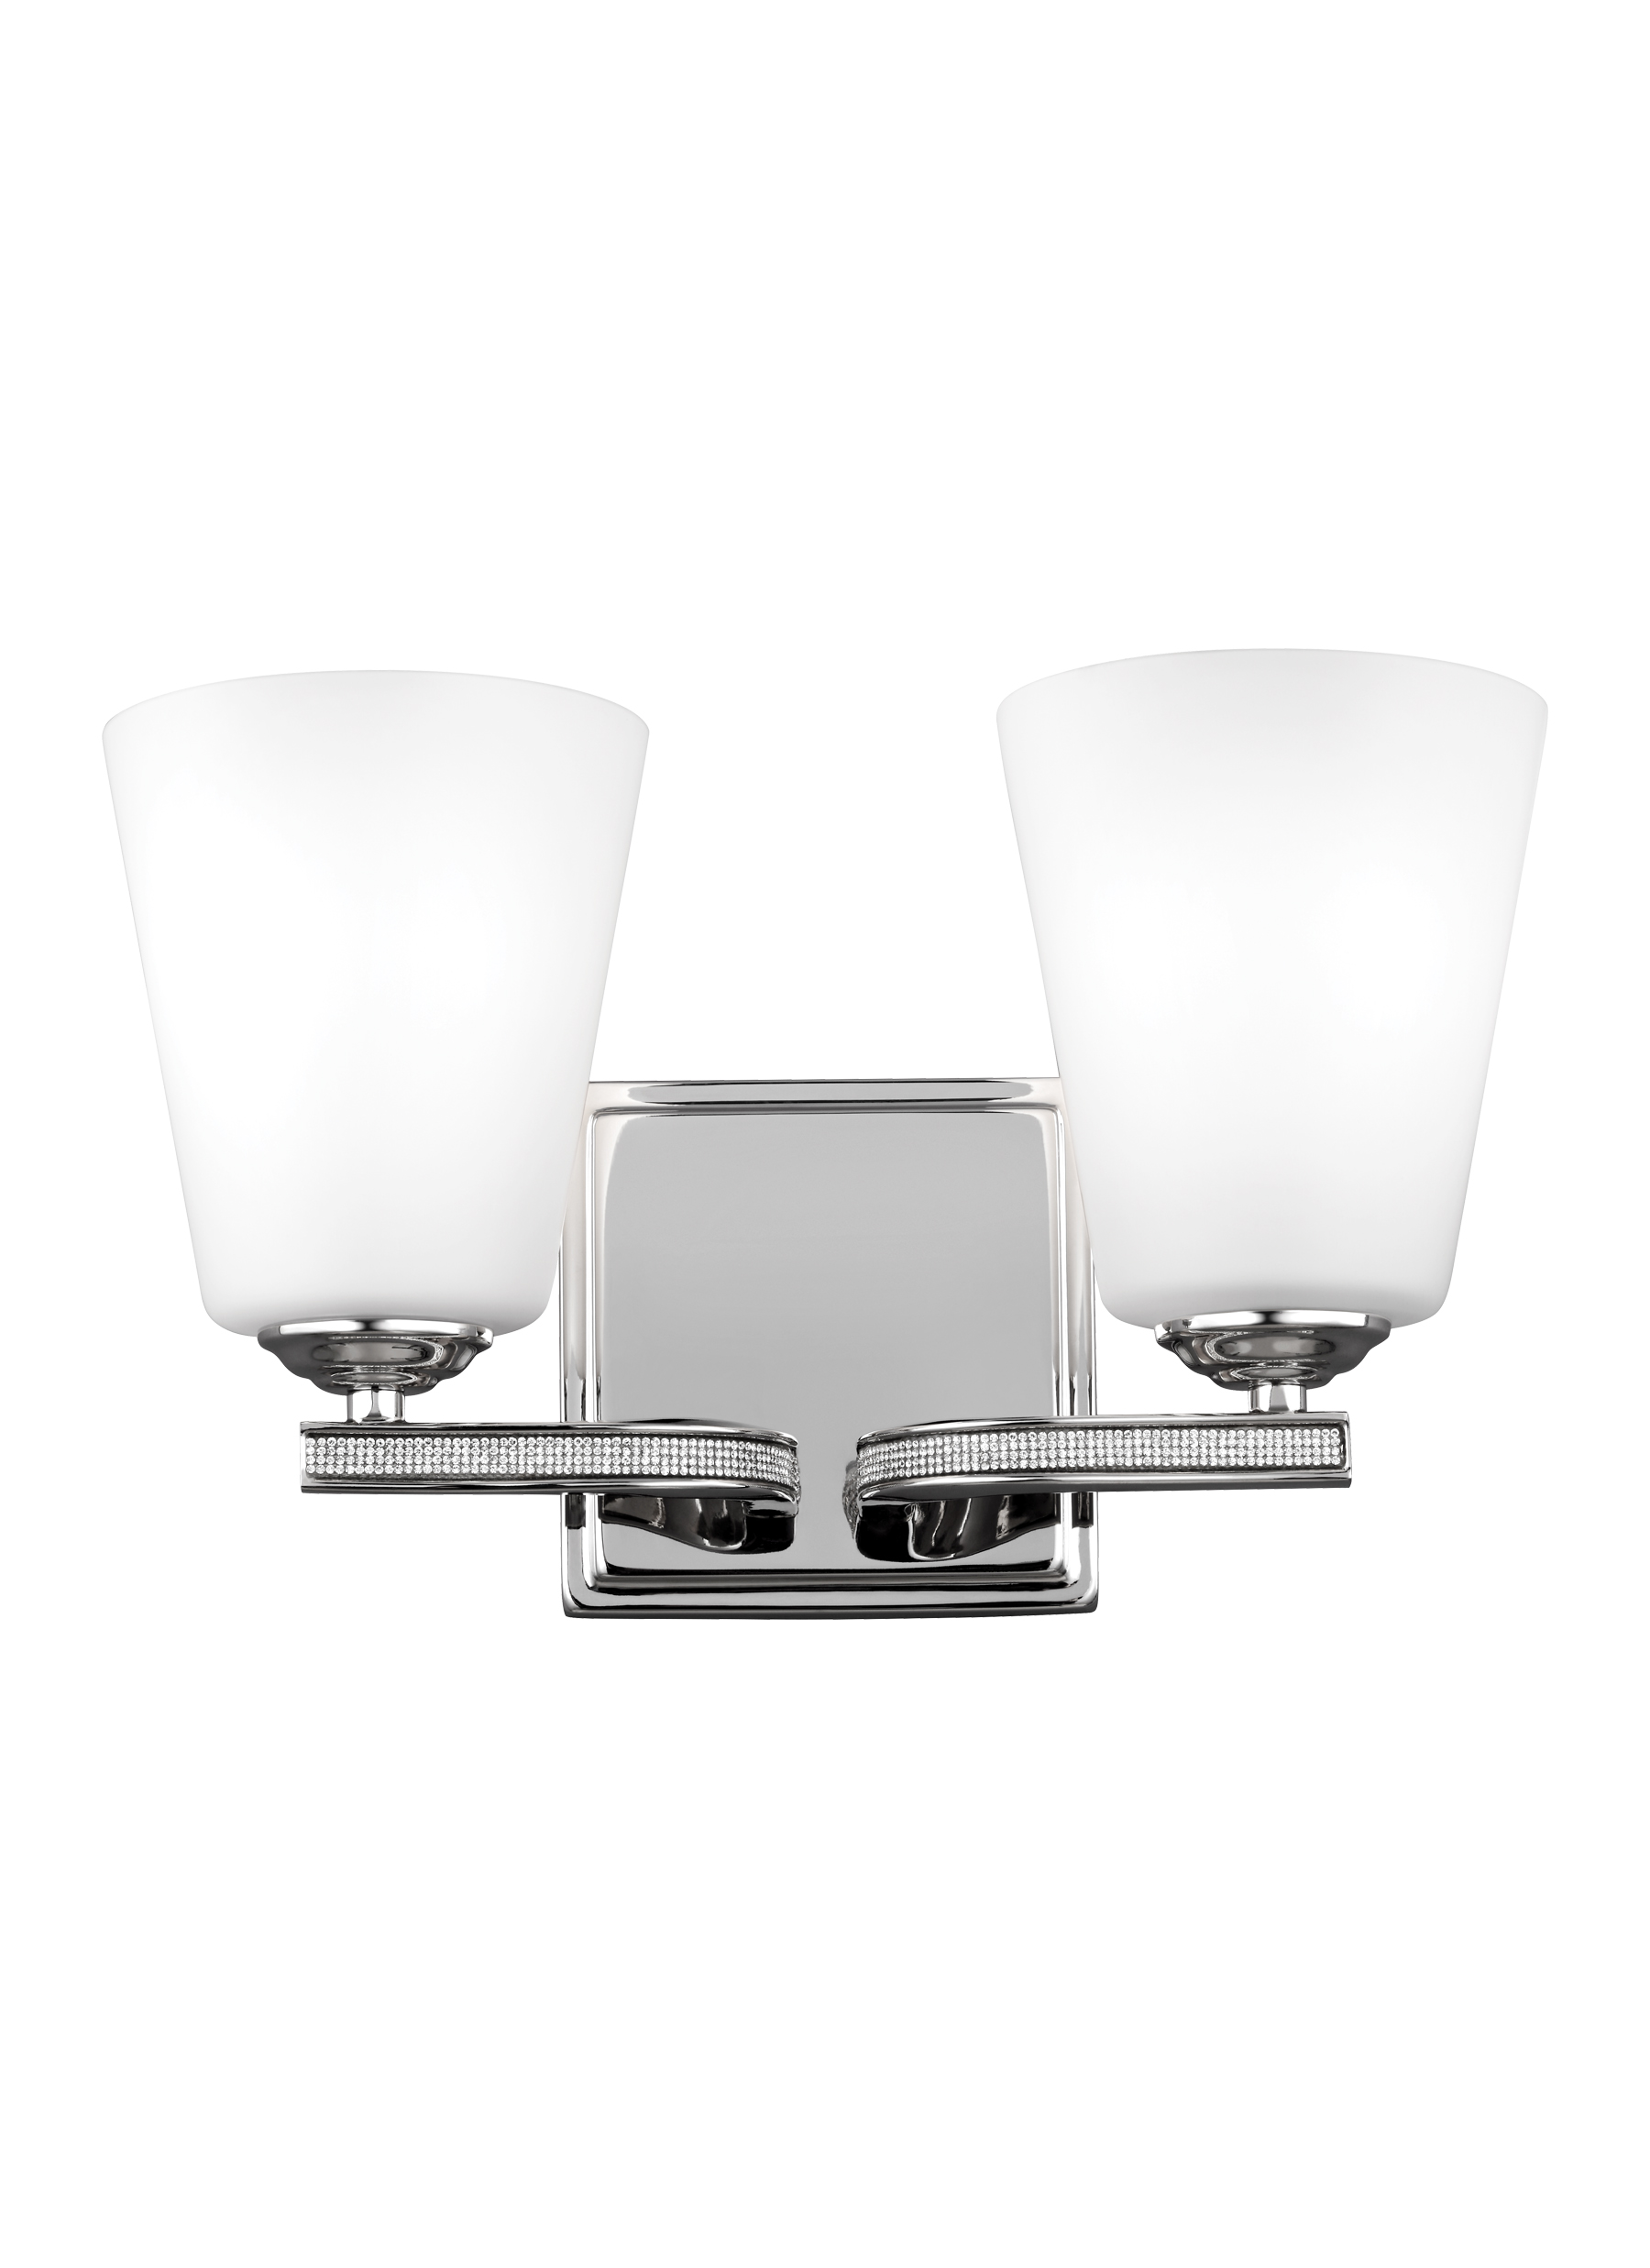 Bathroom Vanity Lights Polished Nickel vs20202pn,2 - light vanity,polished nickel